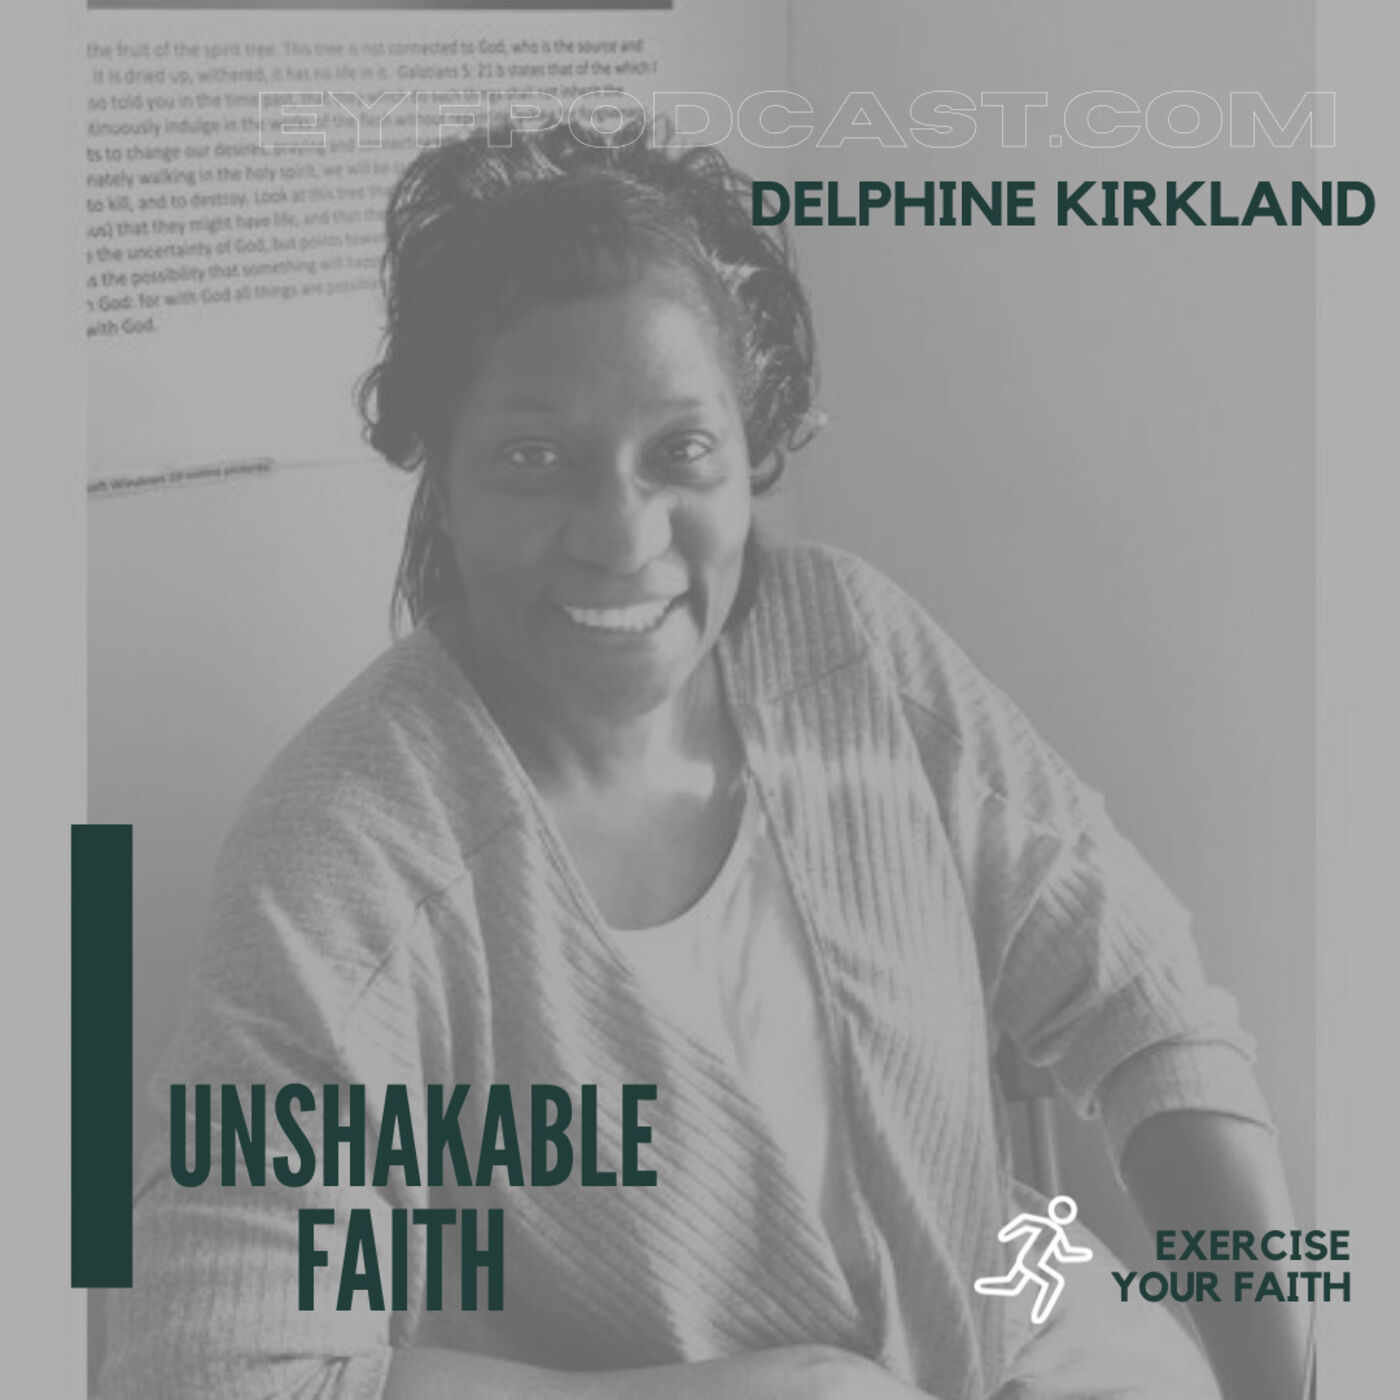 EYFPodcast- Exercise your faith by believing in God even when no one else does. Delphine Kirkland's amazing story of healing.